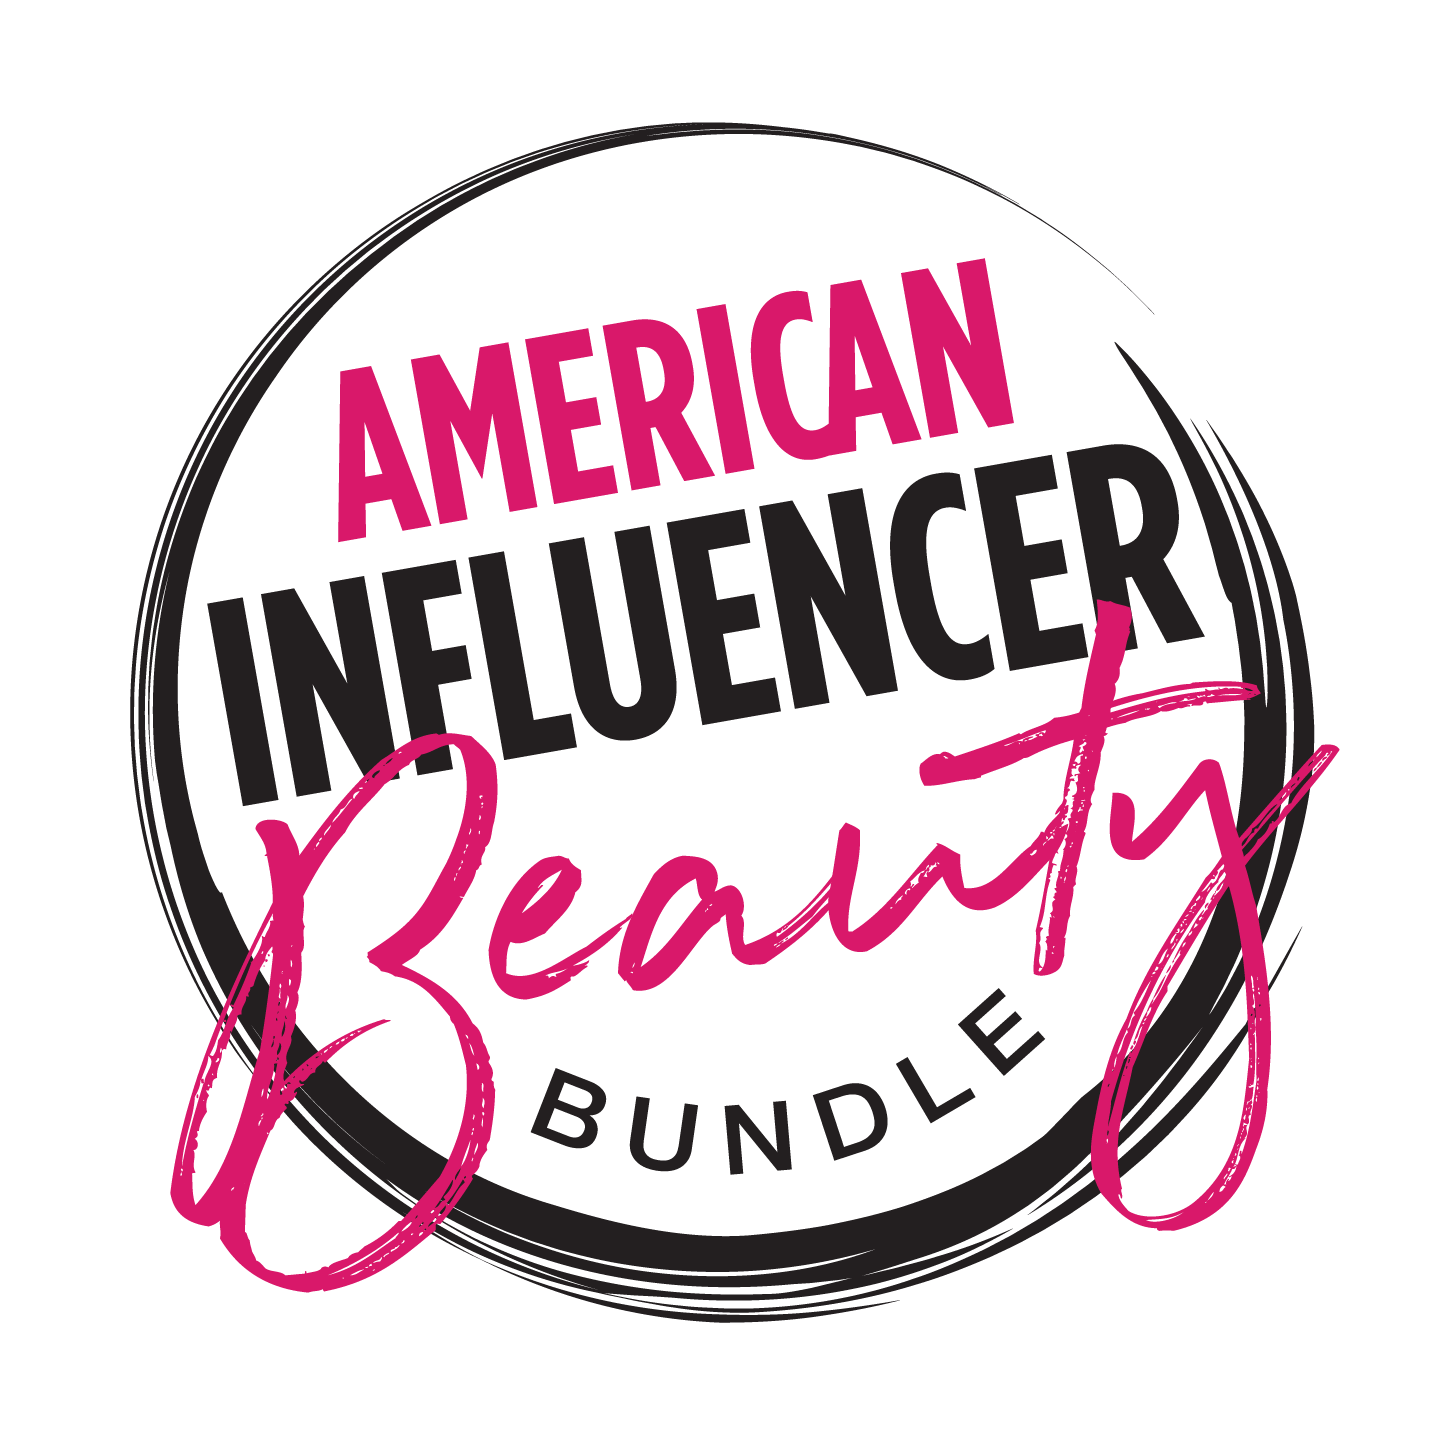 AIA Beauty Bundle